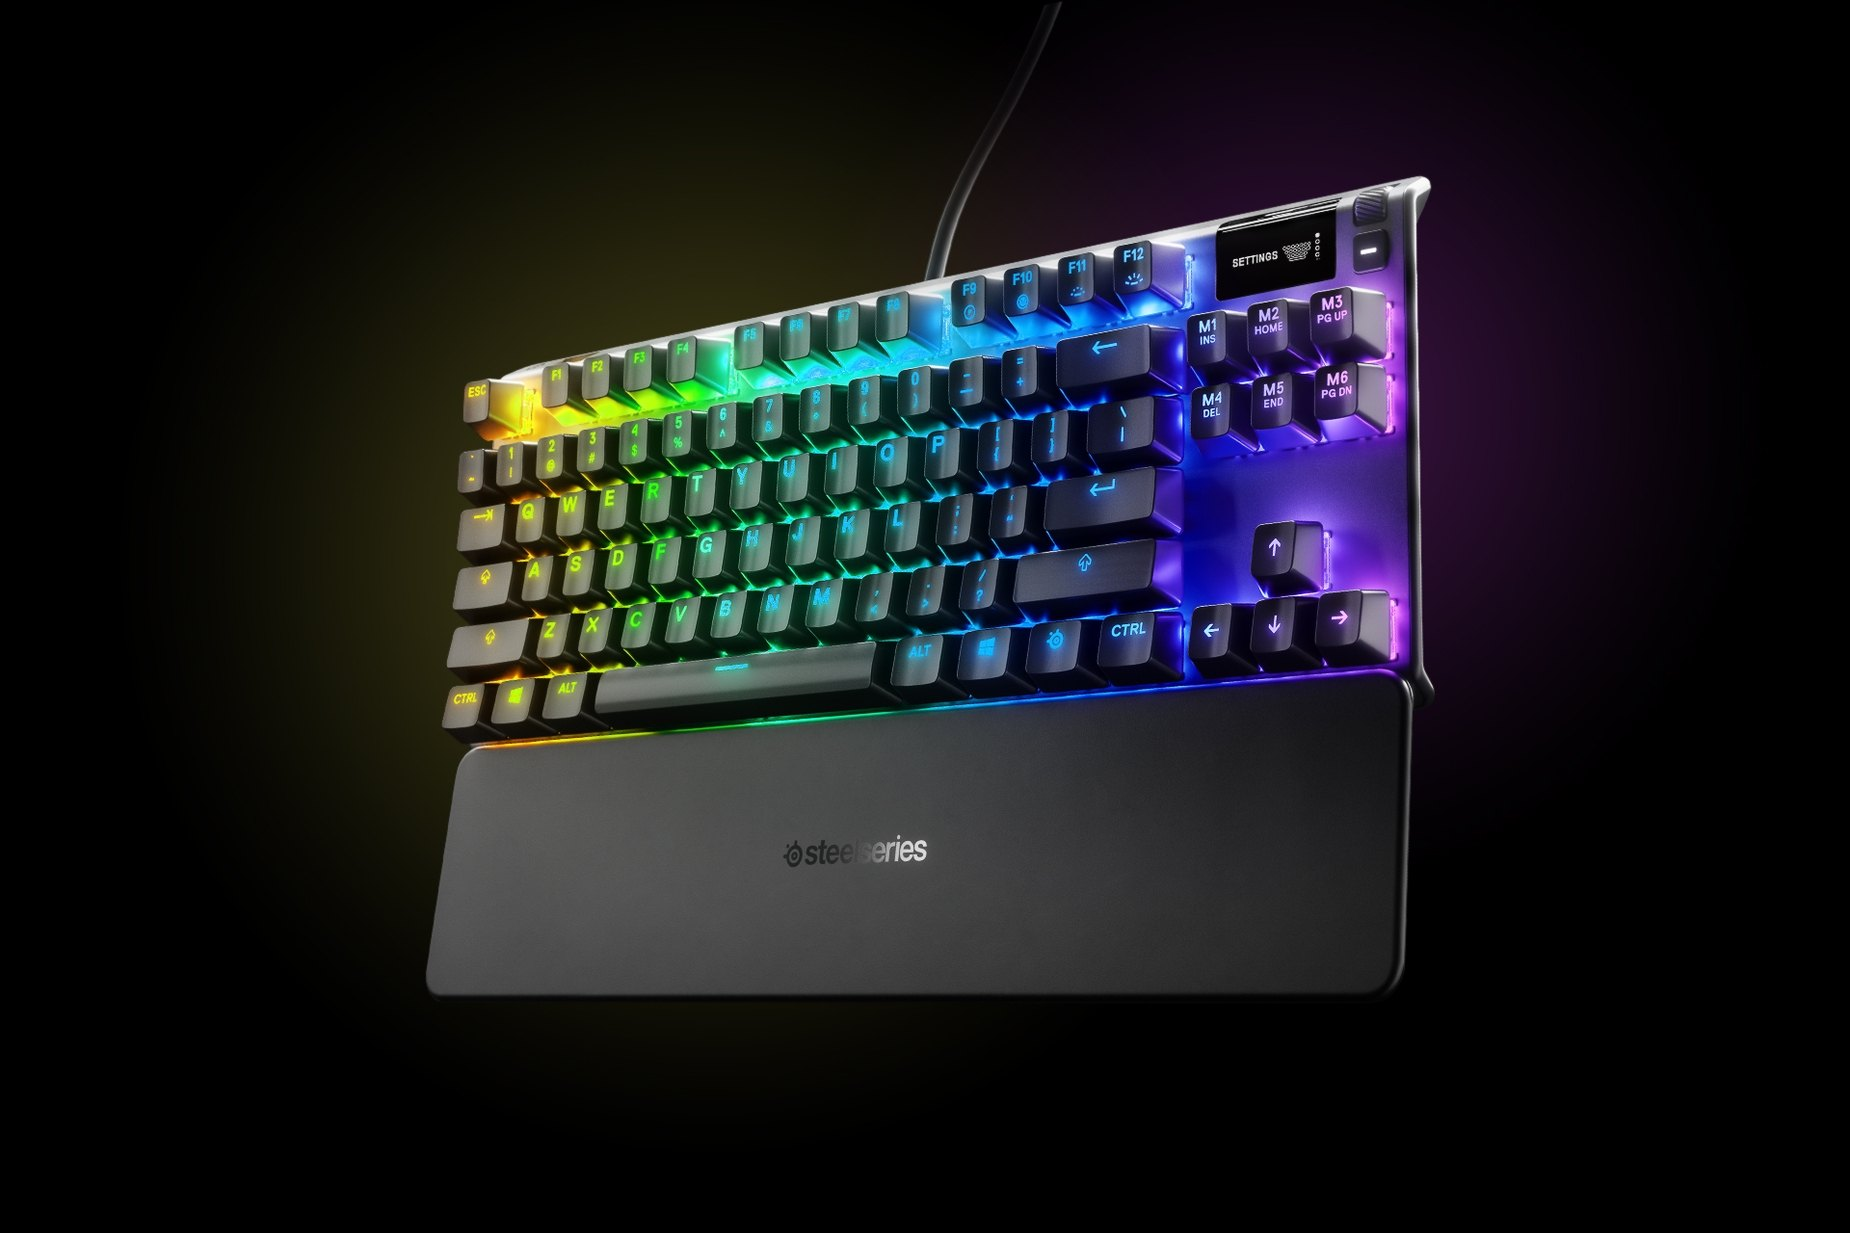 Korean - Apex 7 TKL (Blue Switch) gaming keyboard with the illumination lit up on dark background, also shows the OLED screen and controls used to change settings and adjust audio